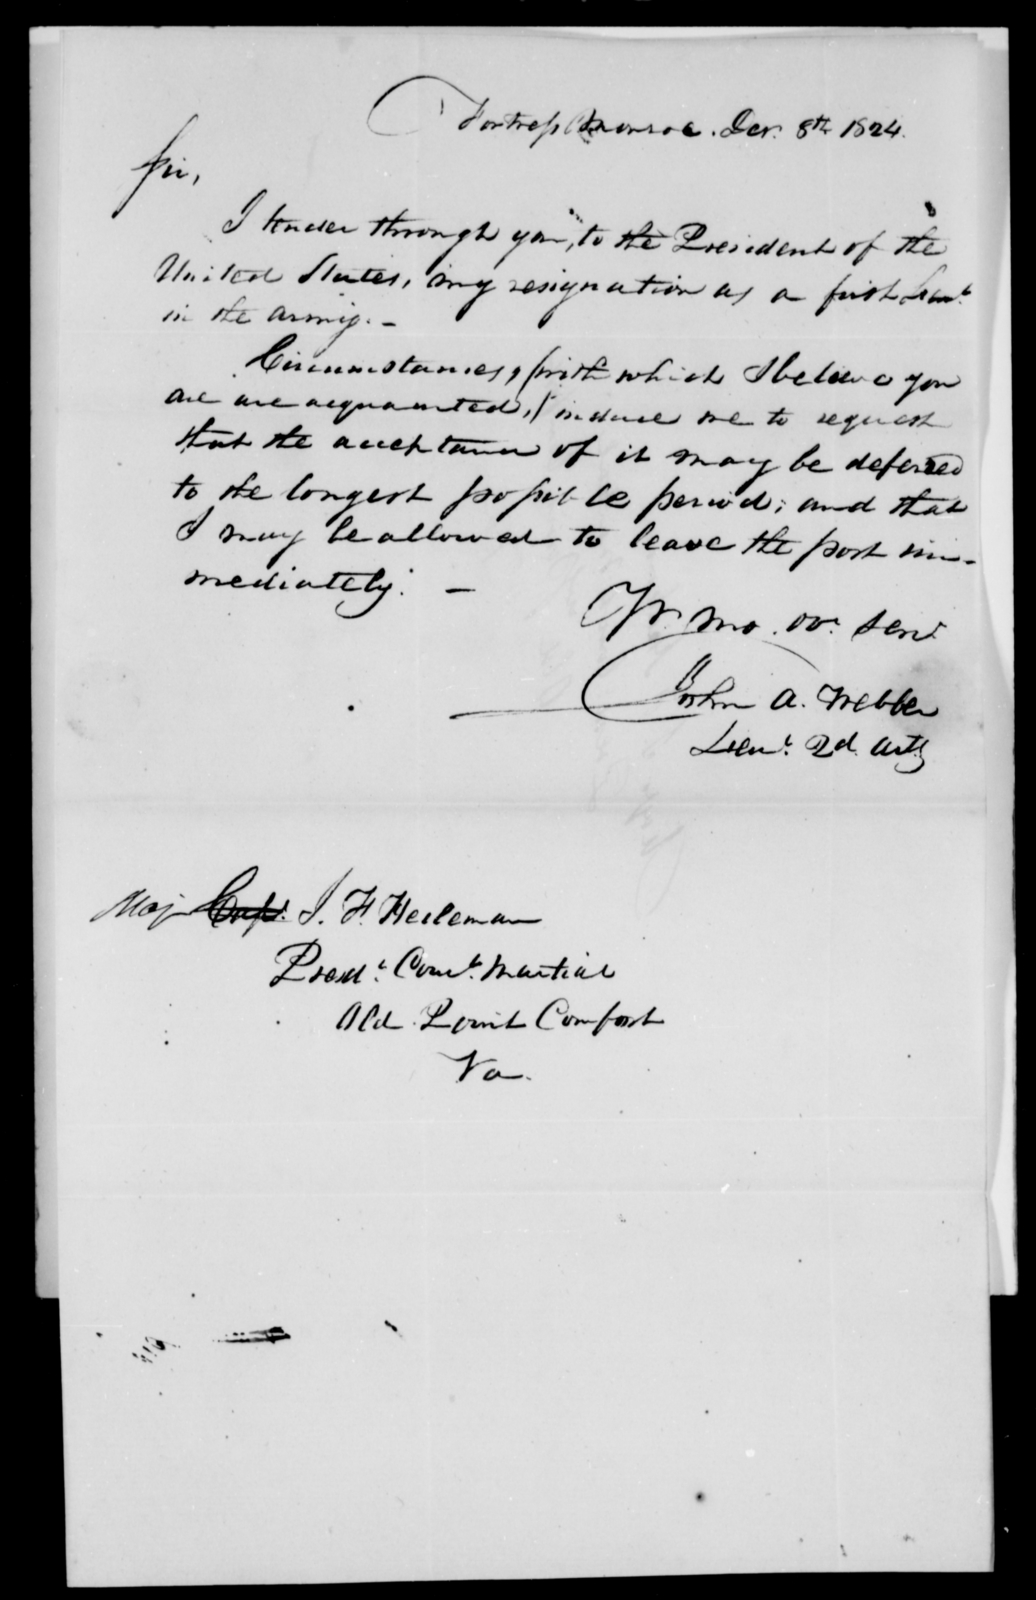 Webber, John A - State: [Blank] - Year: 1824 - File Number: W104